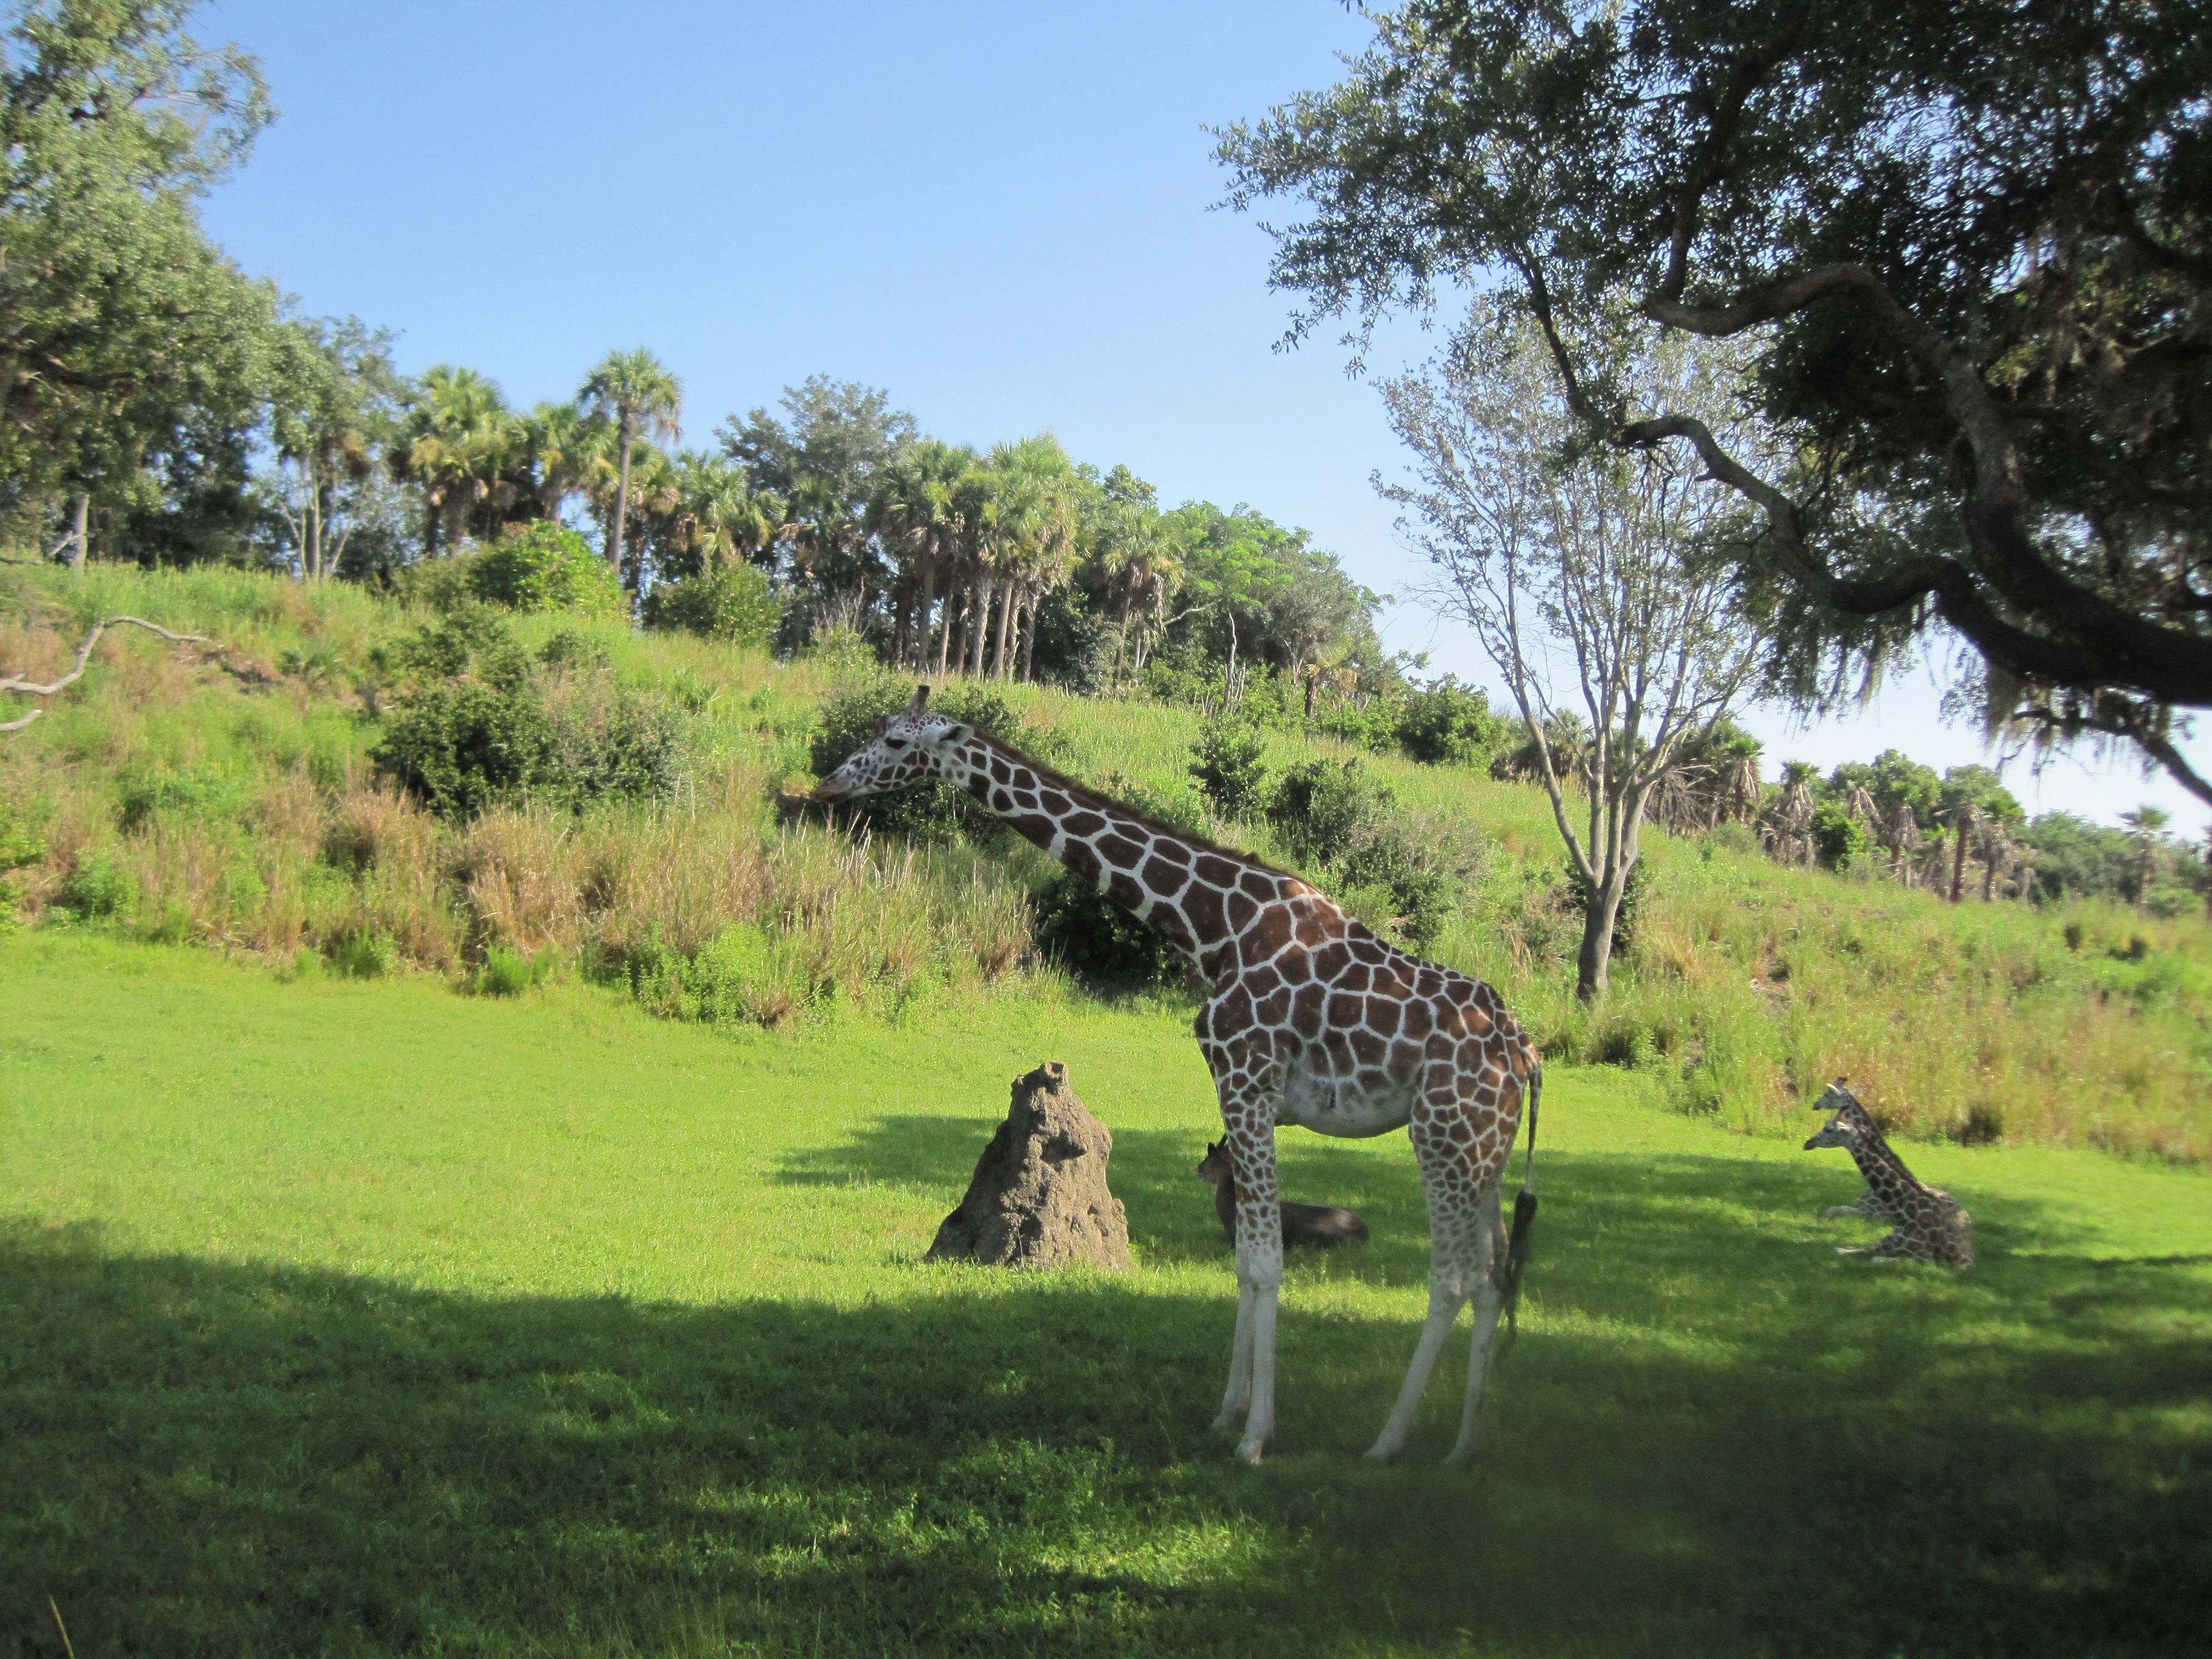 Safari ride at Disney World. sooo cool!